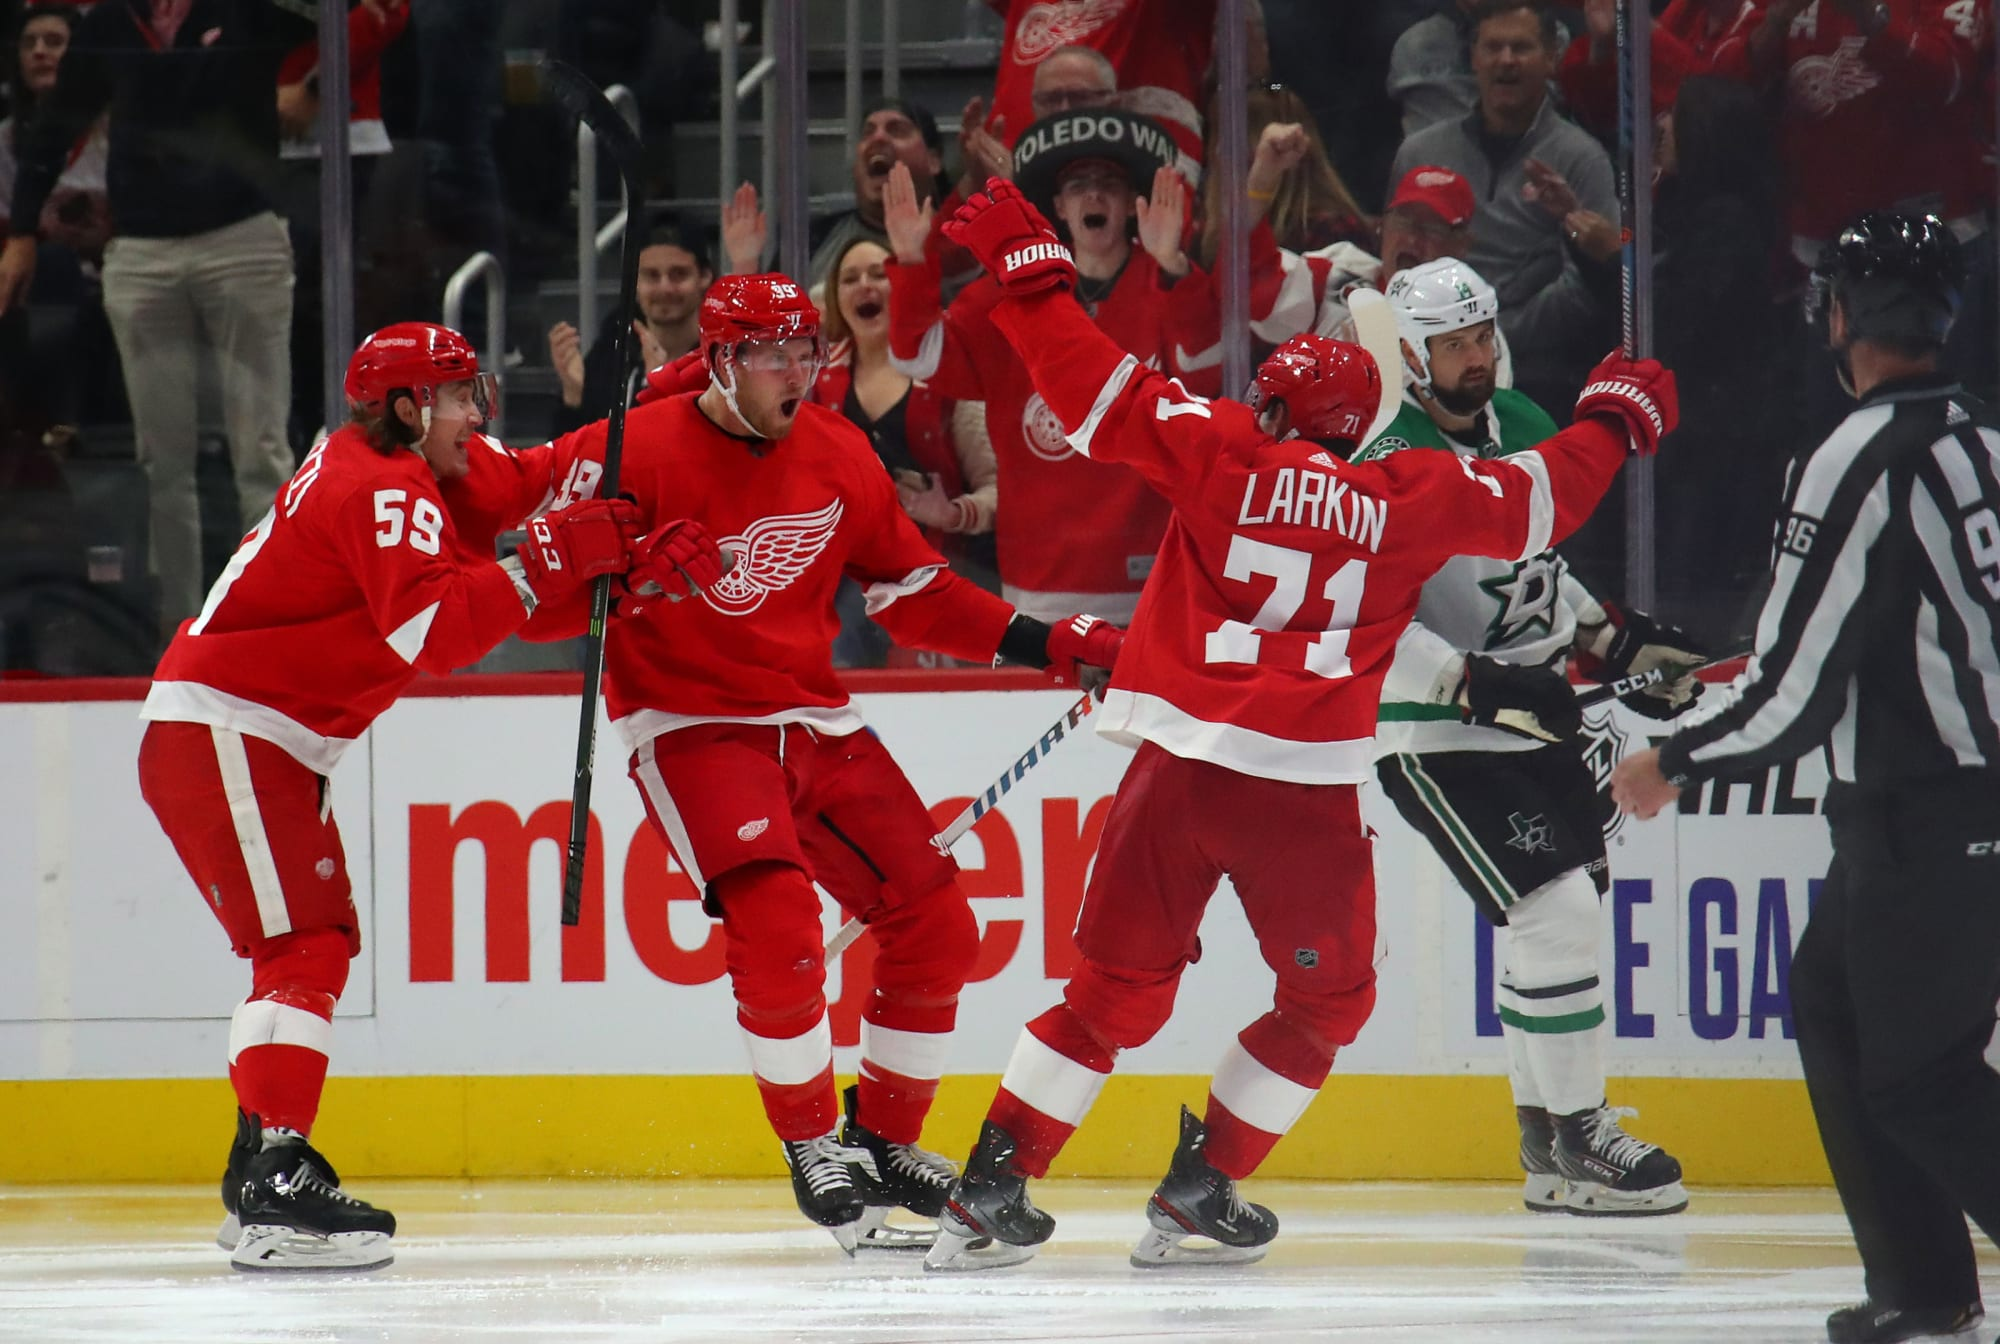 Detroit Red Wings: Checking in on the 2019-20 Core